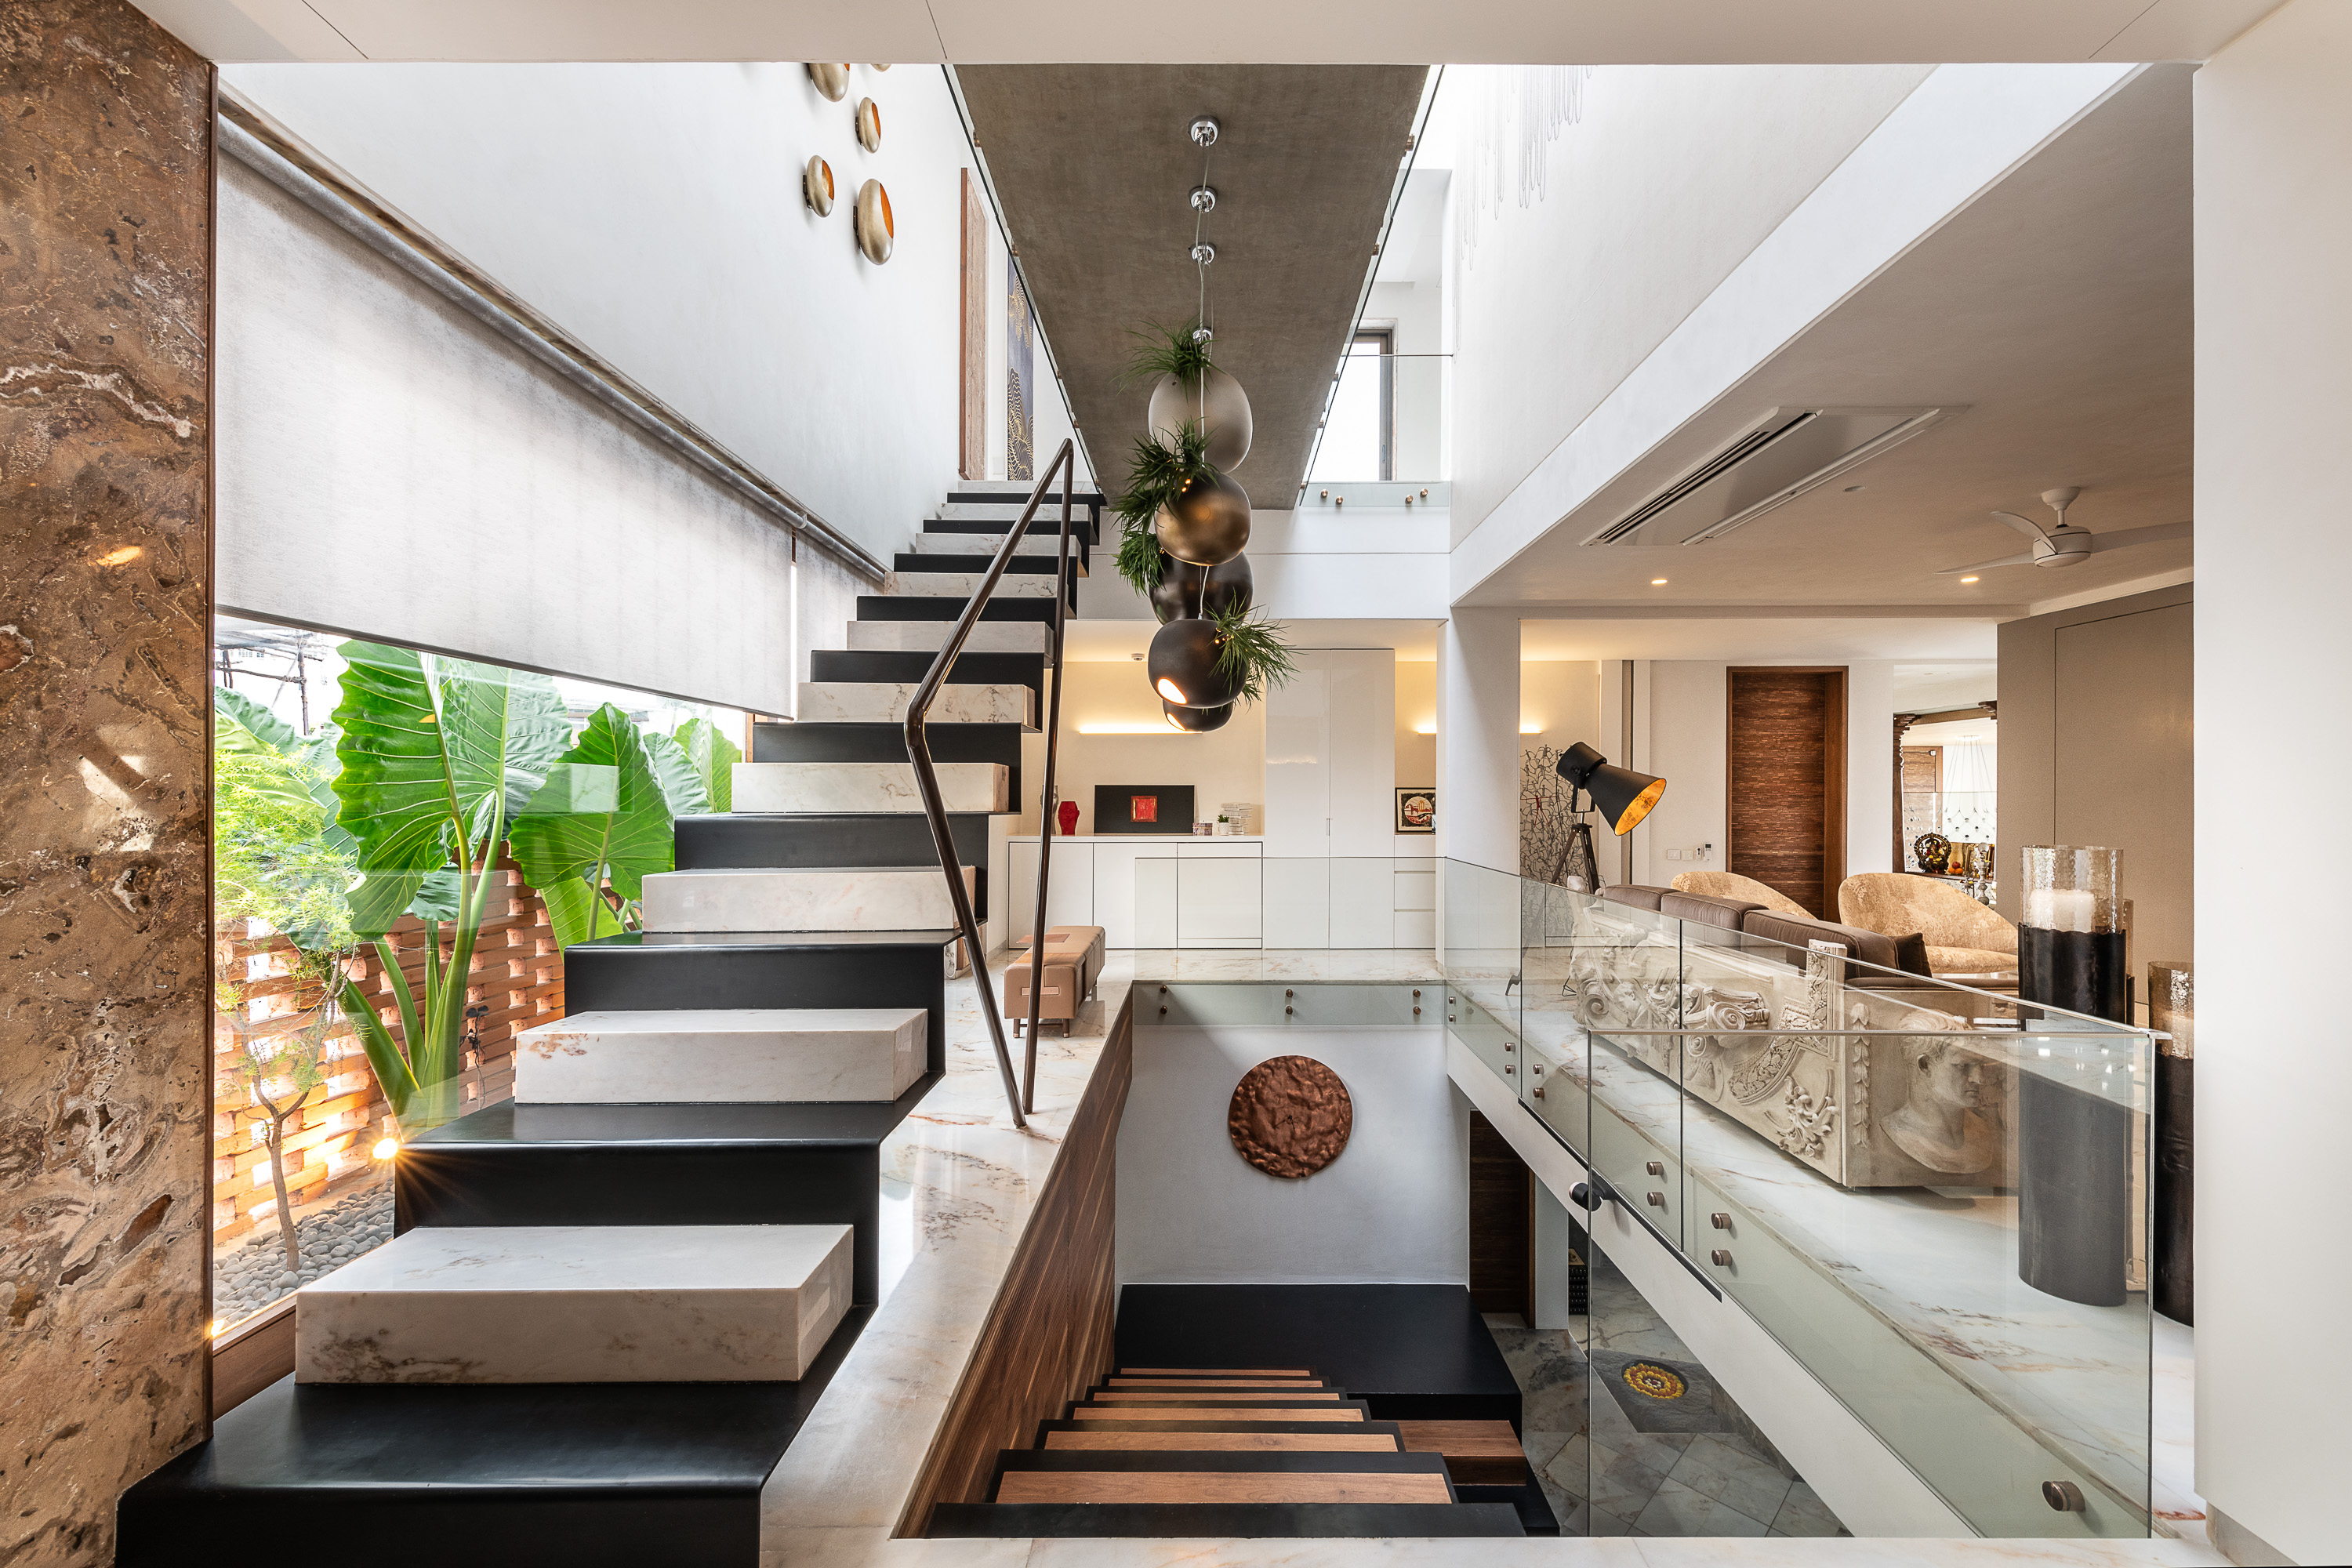 Sustainability Meets Luxury In This Private Residence by NA Architects (9) na architects NA Architects Design A Private Residence Where Copper Hues Reign Sustainability Meets Luxury In This Private Residence by NA Architects 9